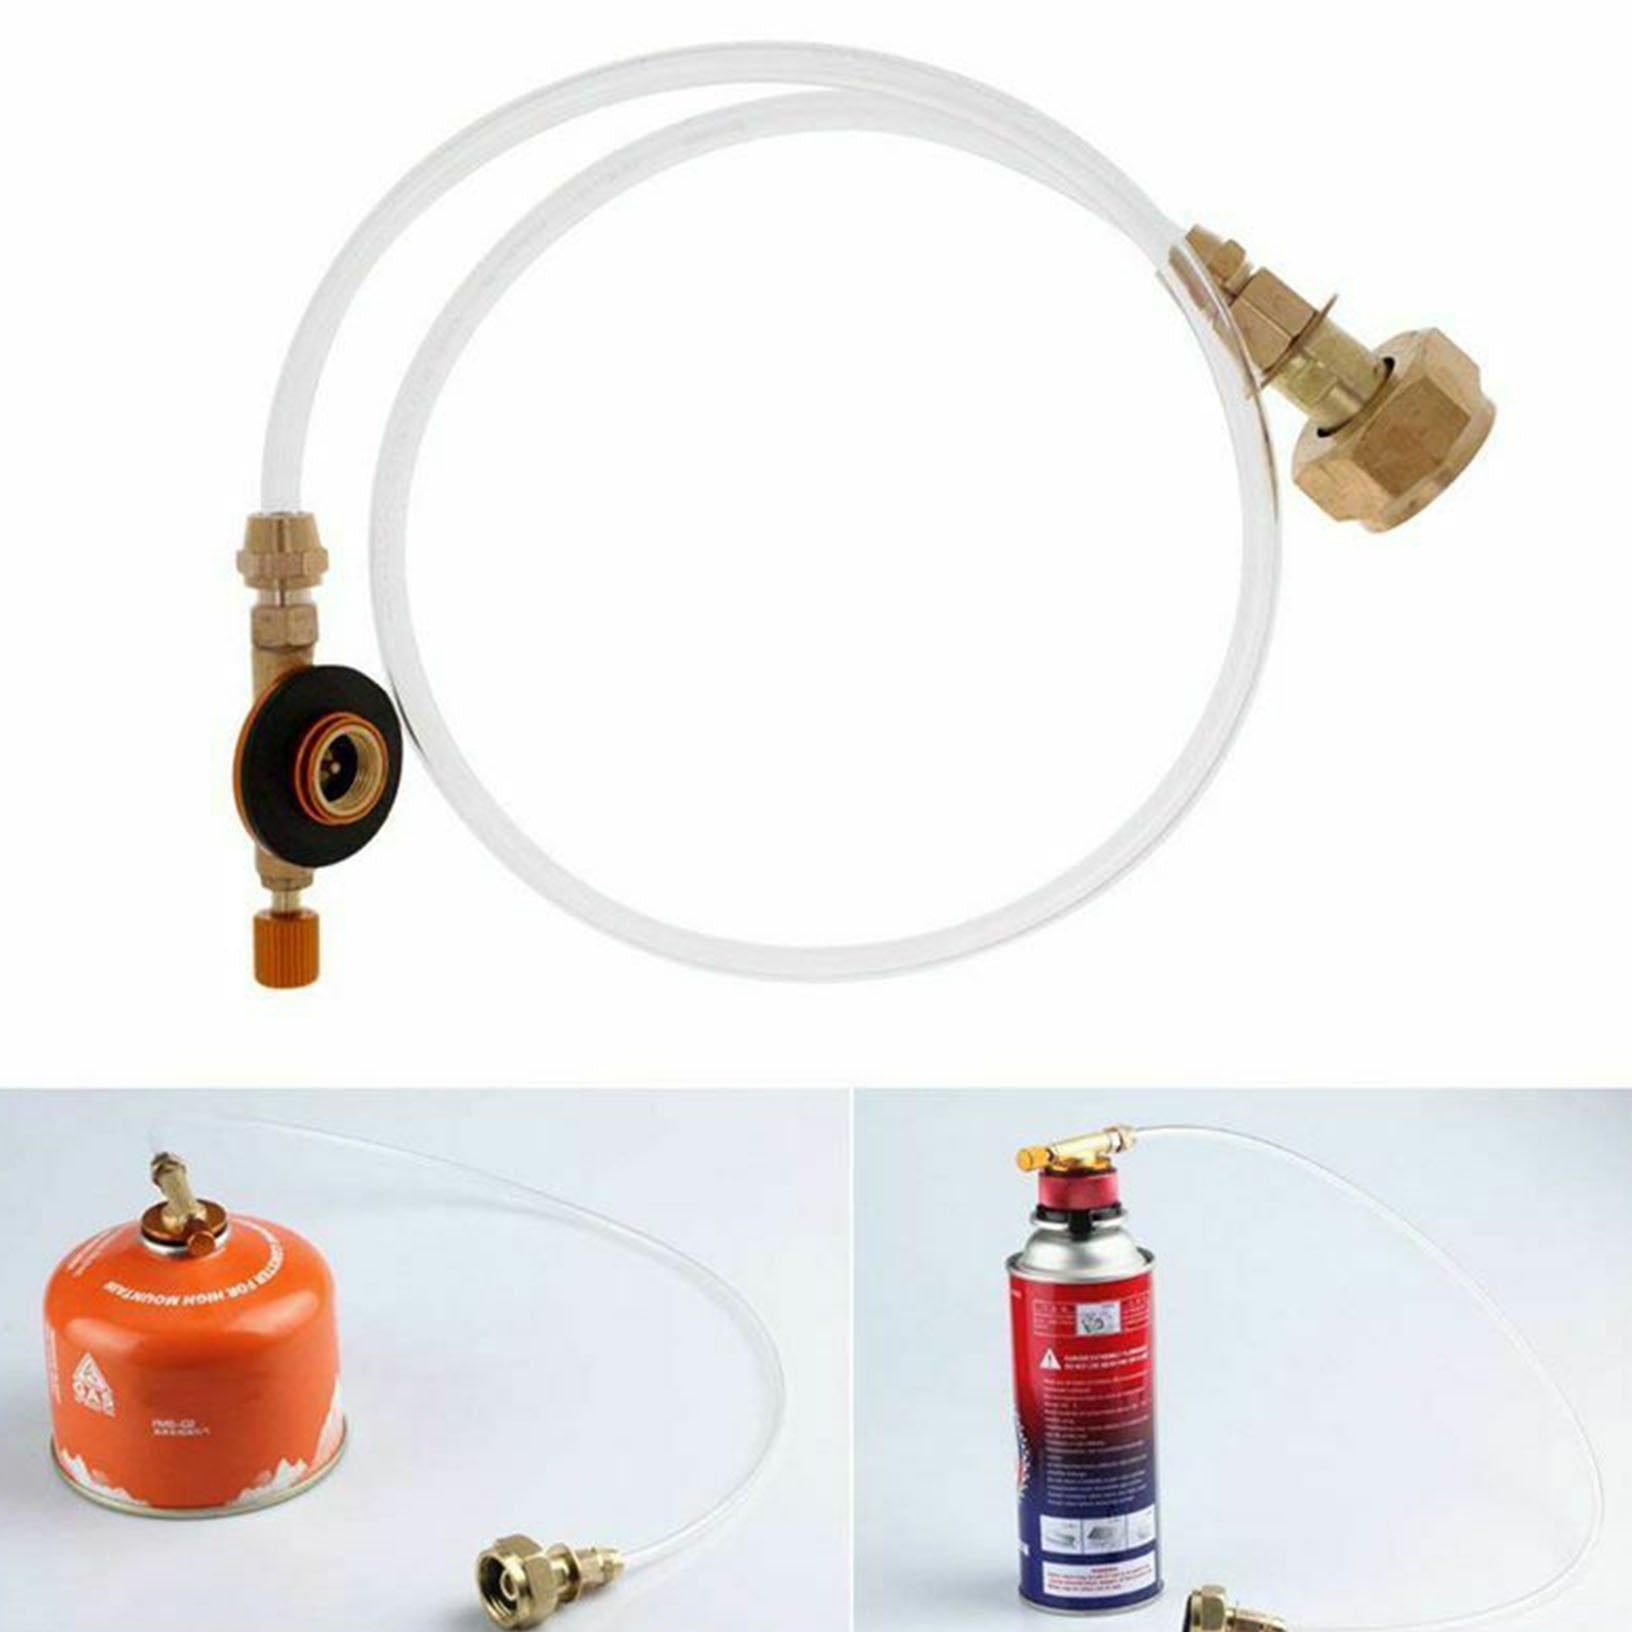 Propane refill adapter picnic camping stove gas hose double sided e F1L7